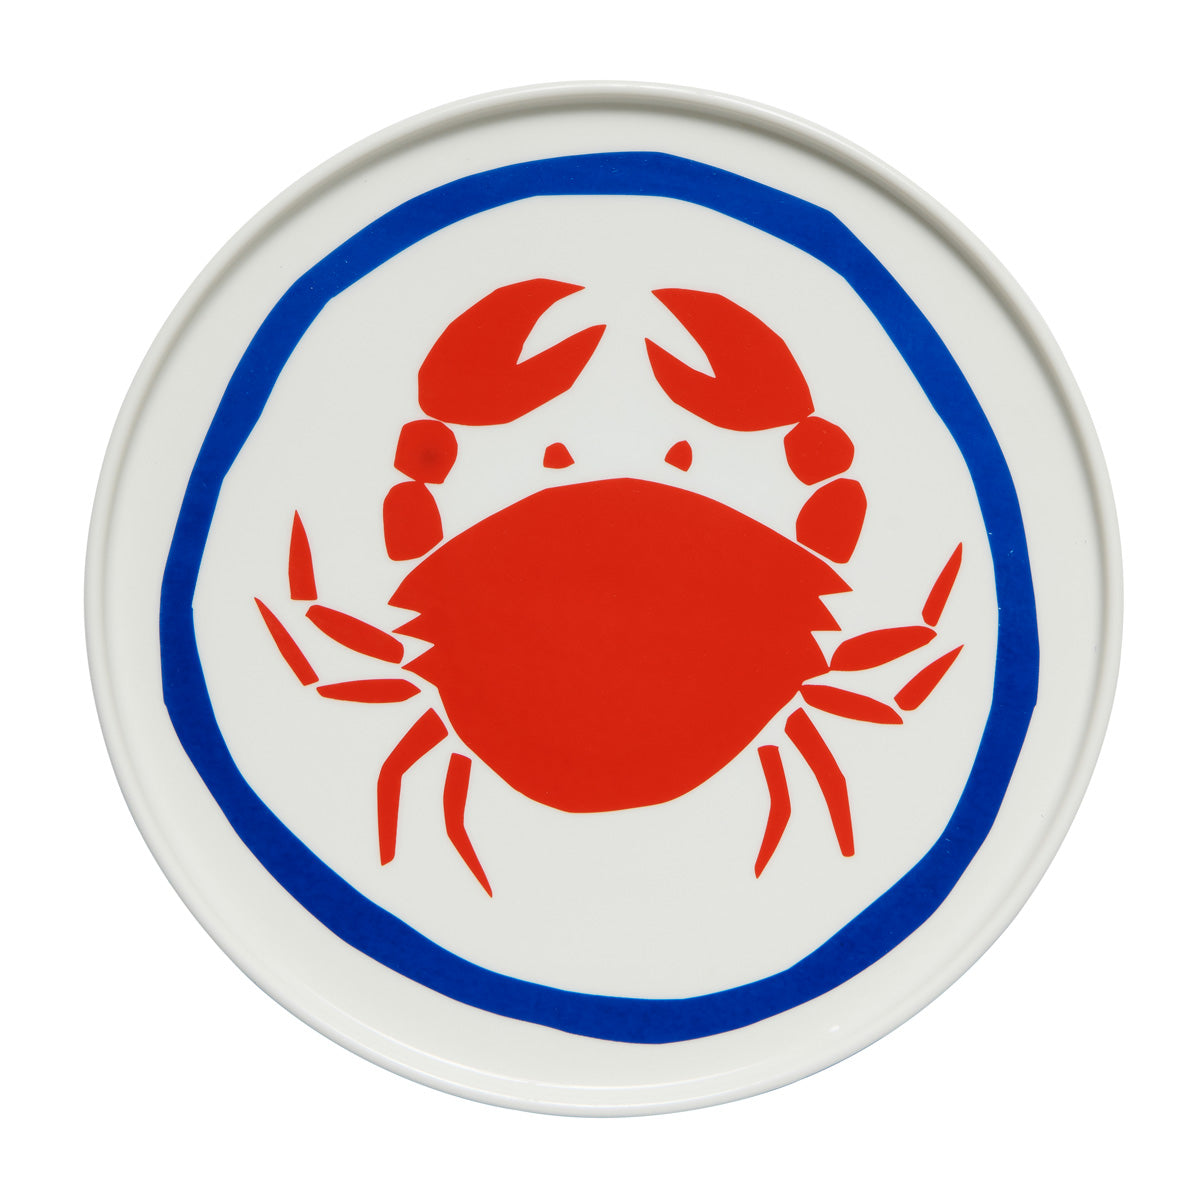 Crab by Daimon Downey - Pre-Order